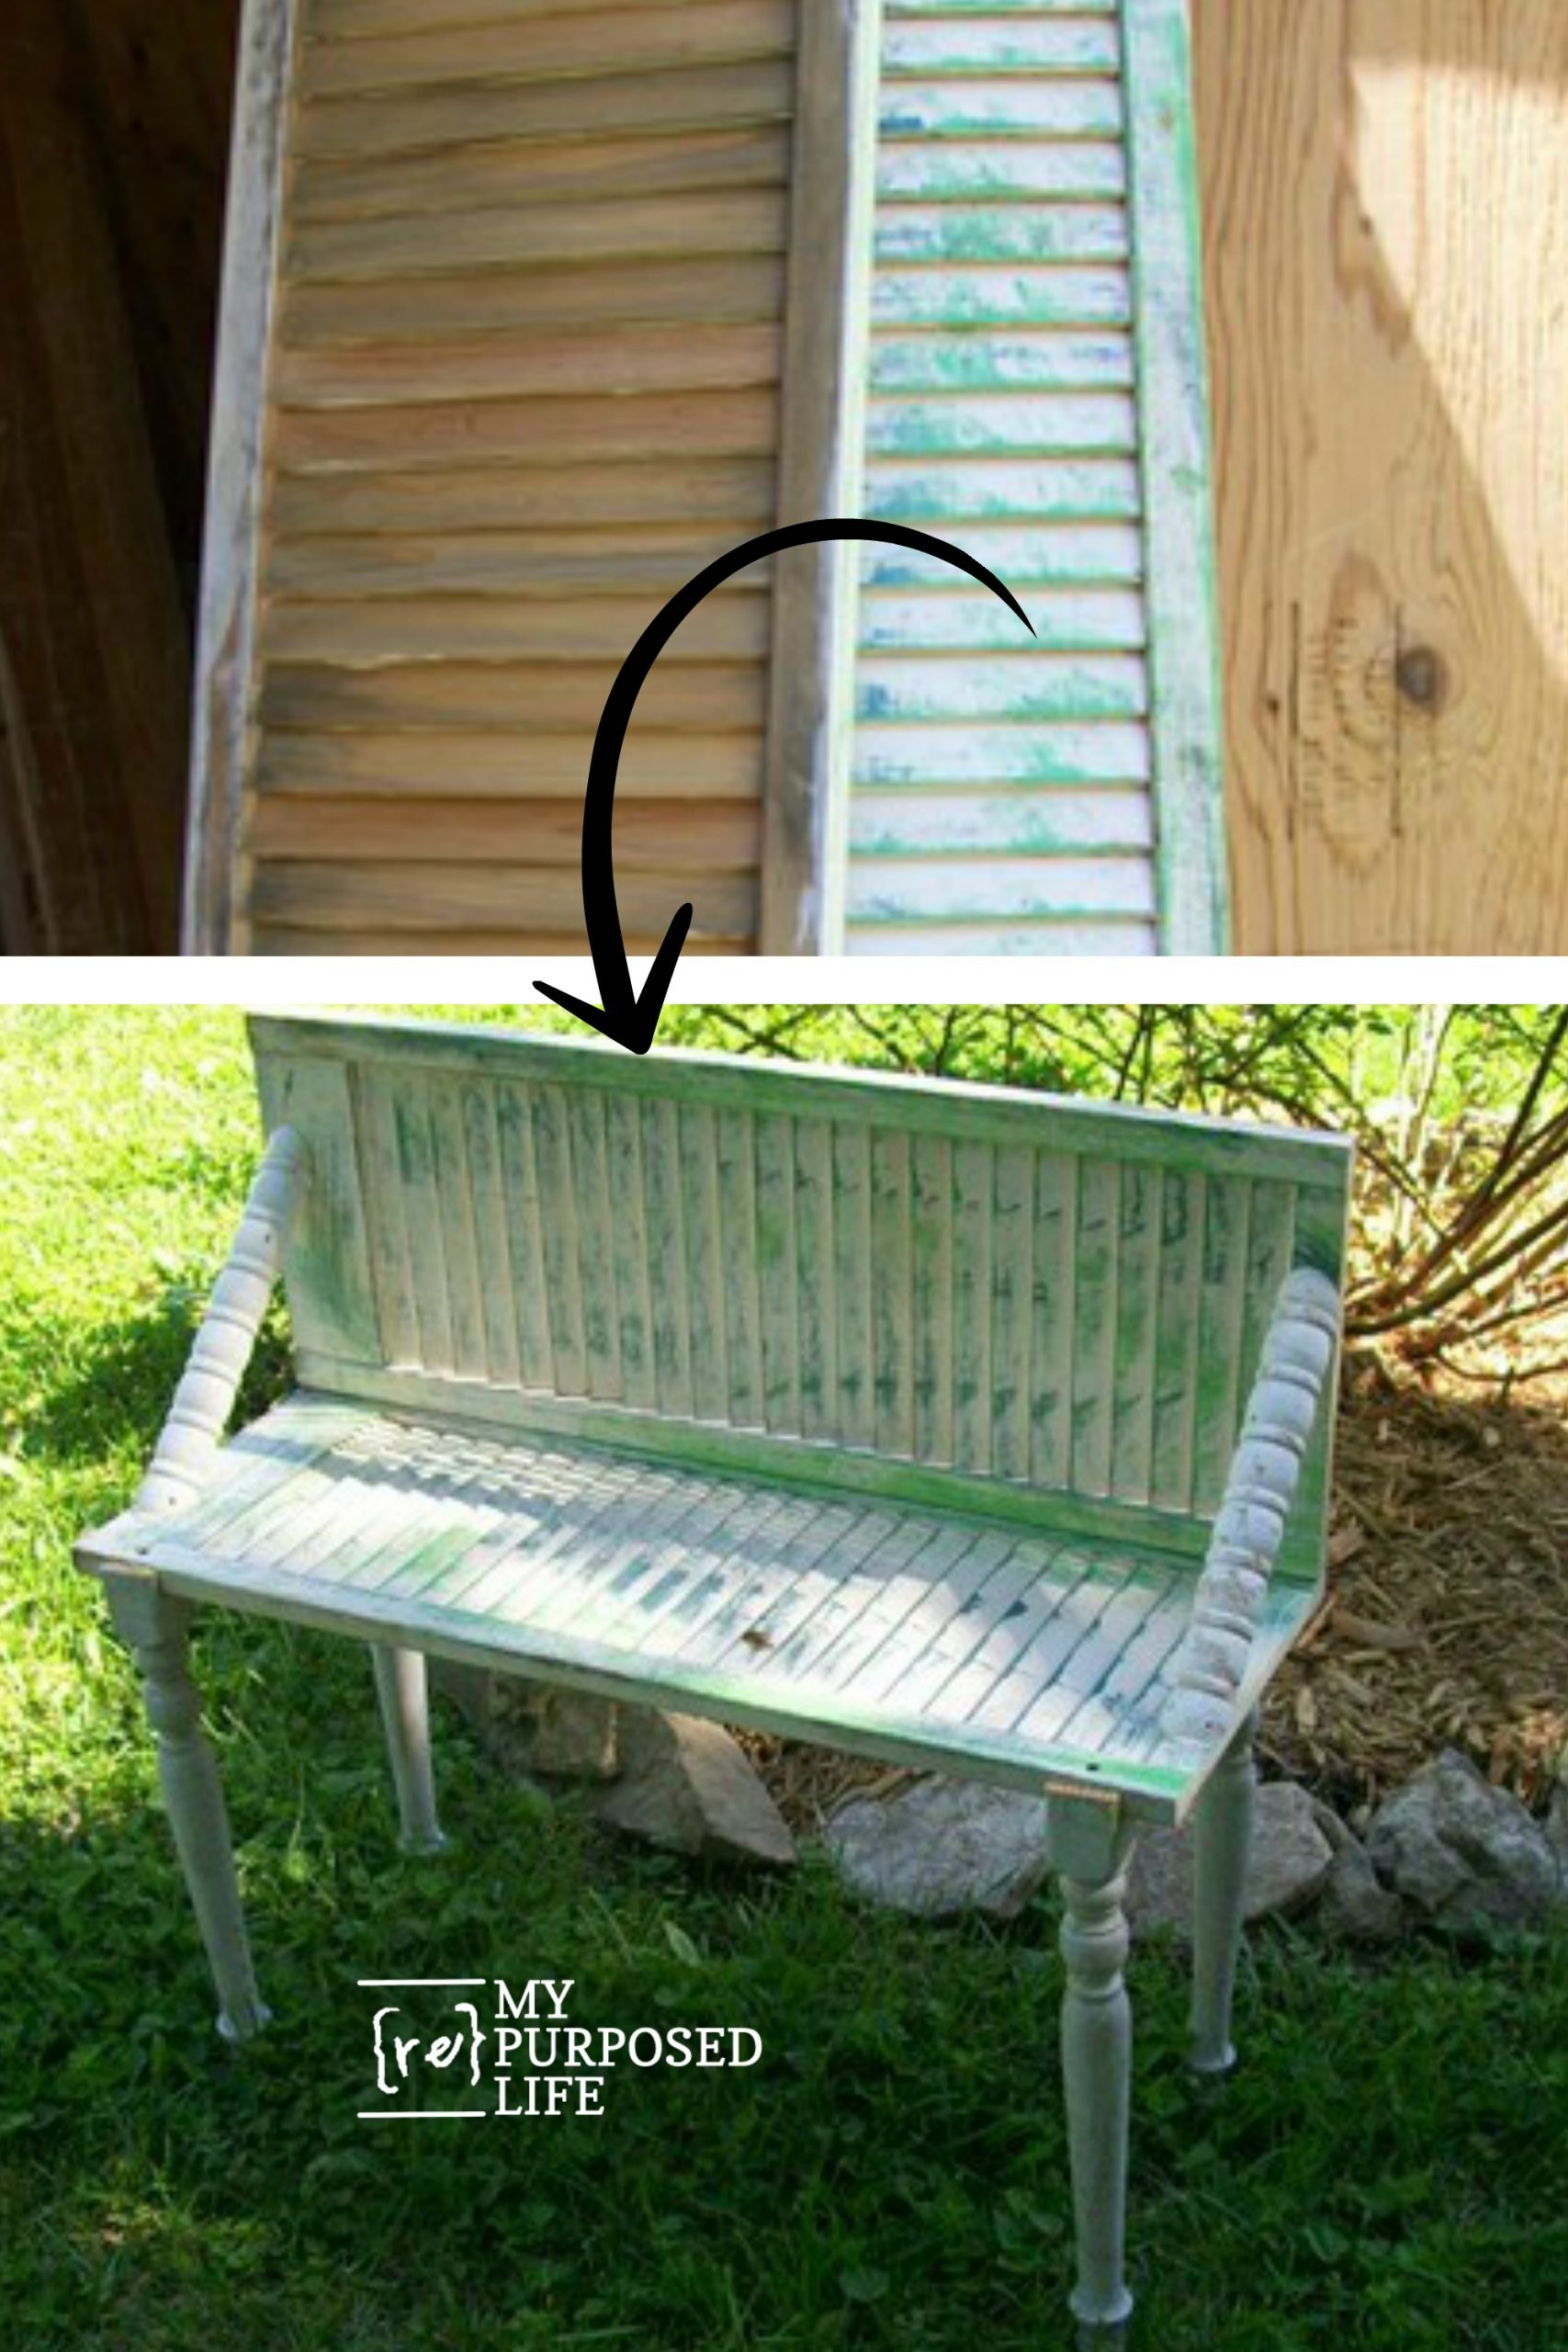 How to make a cute shutter garden bench. What? You don't have a shutter? No problem! Use an old bi-fold door. I use them for shutter projects all the time. #MyRepurposedLife #shutter #garden #bench via @repurposedlife